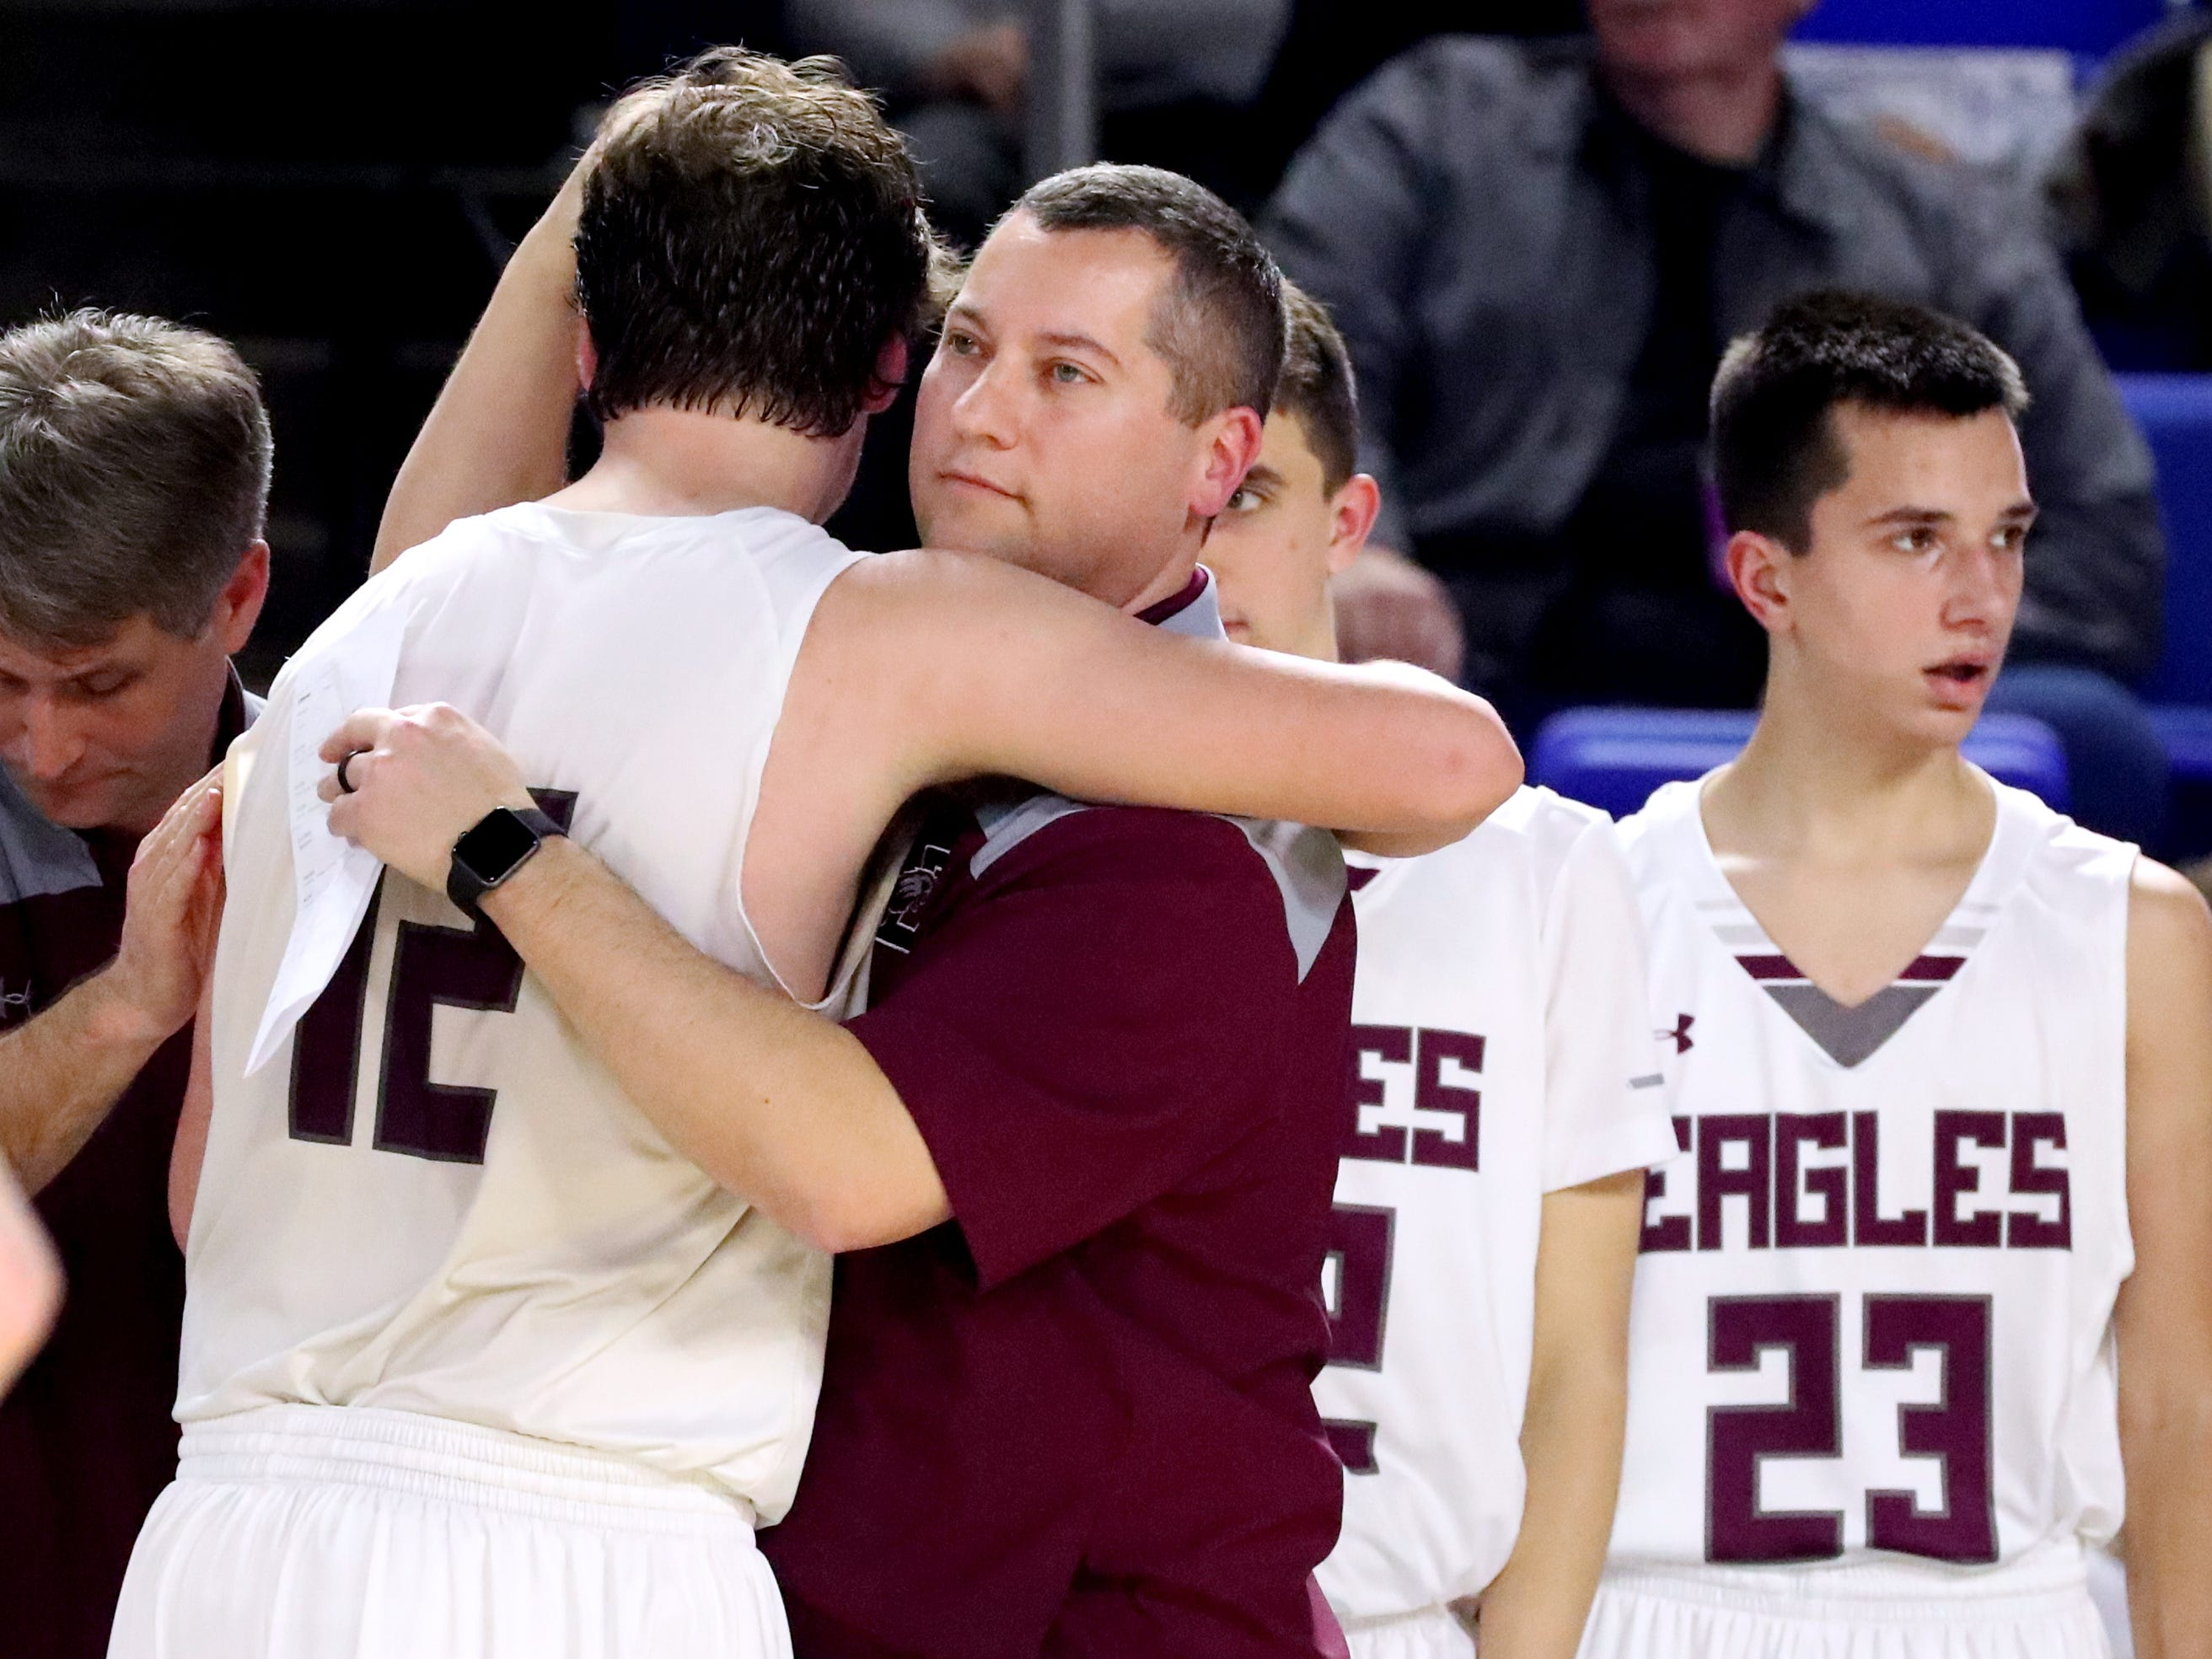 Eagleville's head coach Davy McClaran hugs senior Eagleville's Ethan Cobb (12) as he comes out of the game as they lose to Columbia Academy during the semifinal round of the TSSAA Class A Boys State Tournament, on Thursday, March 15, 2019, at Murphy Center in Murfreesboro, Tenn.